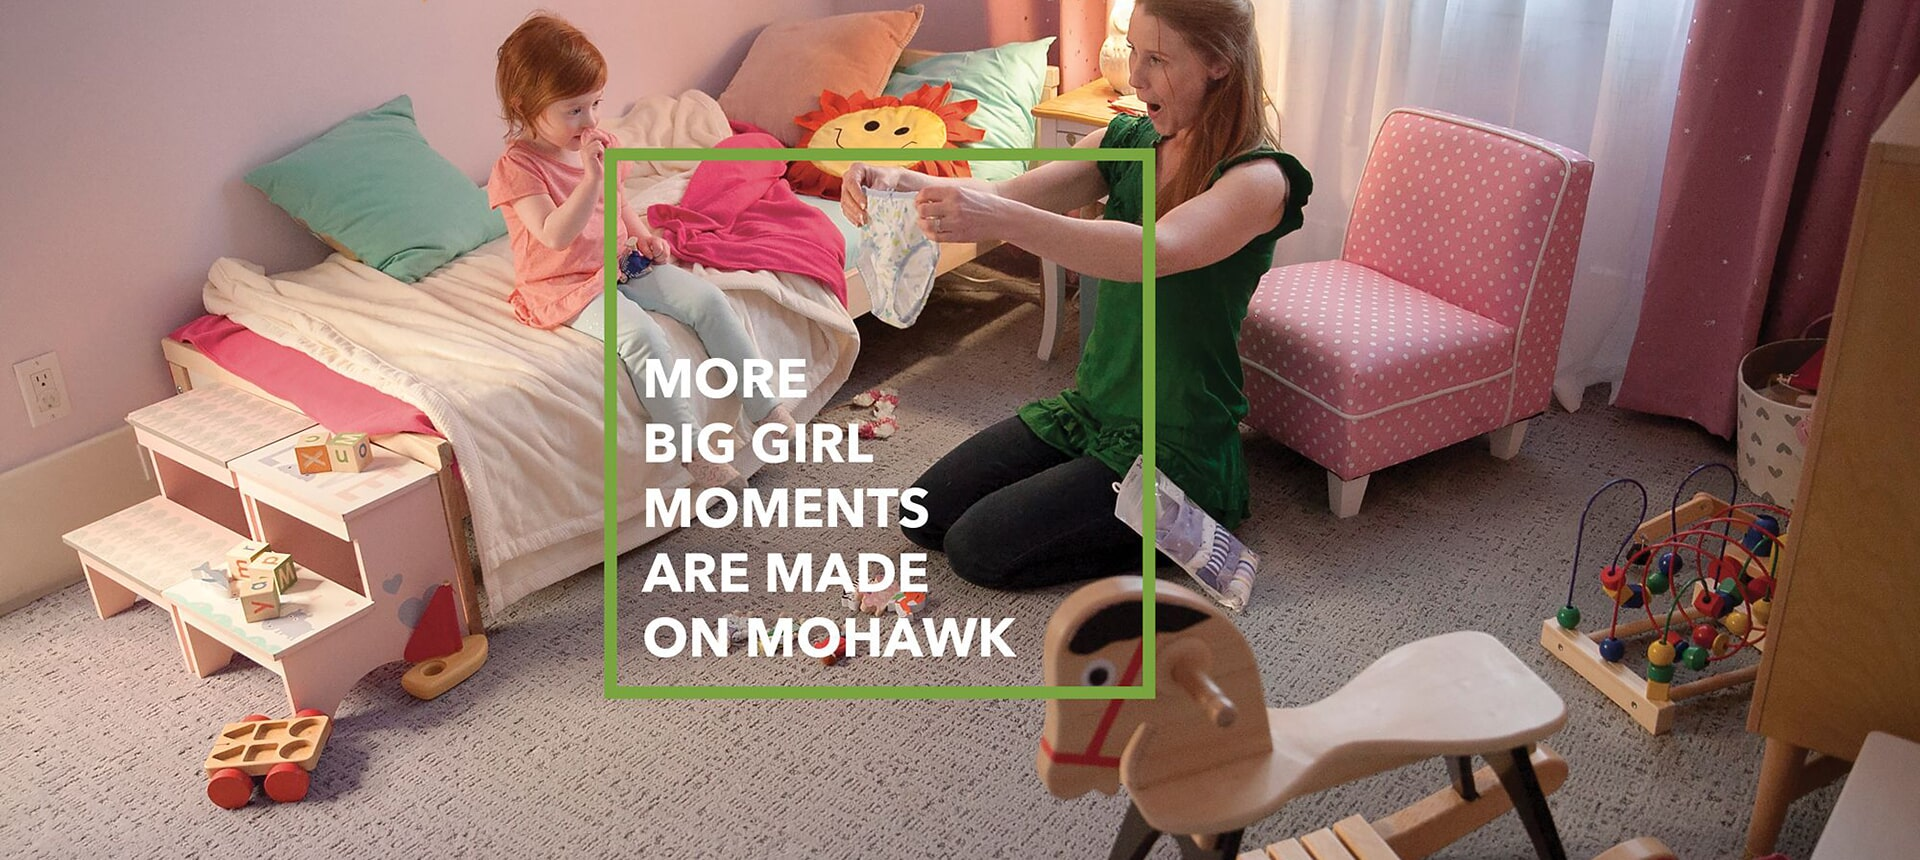 More Playful Moments Are Made On Mohawk